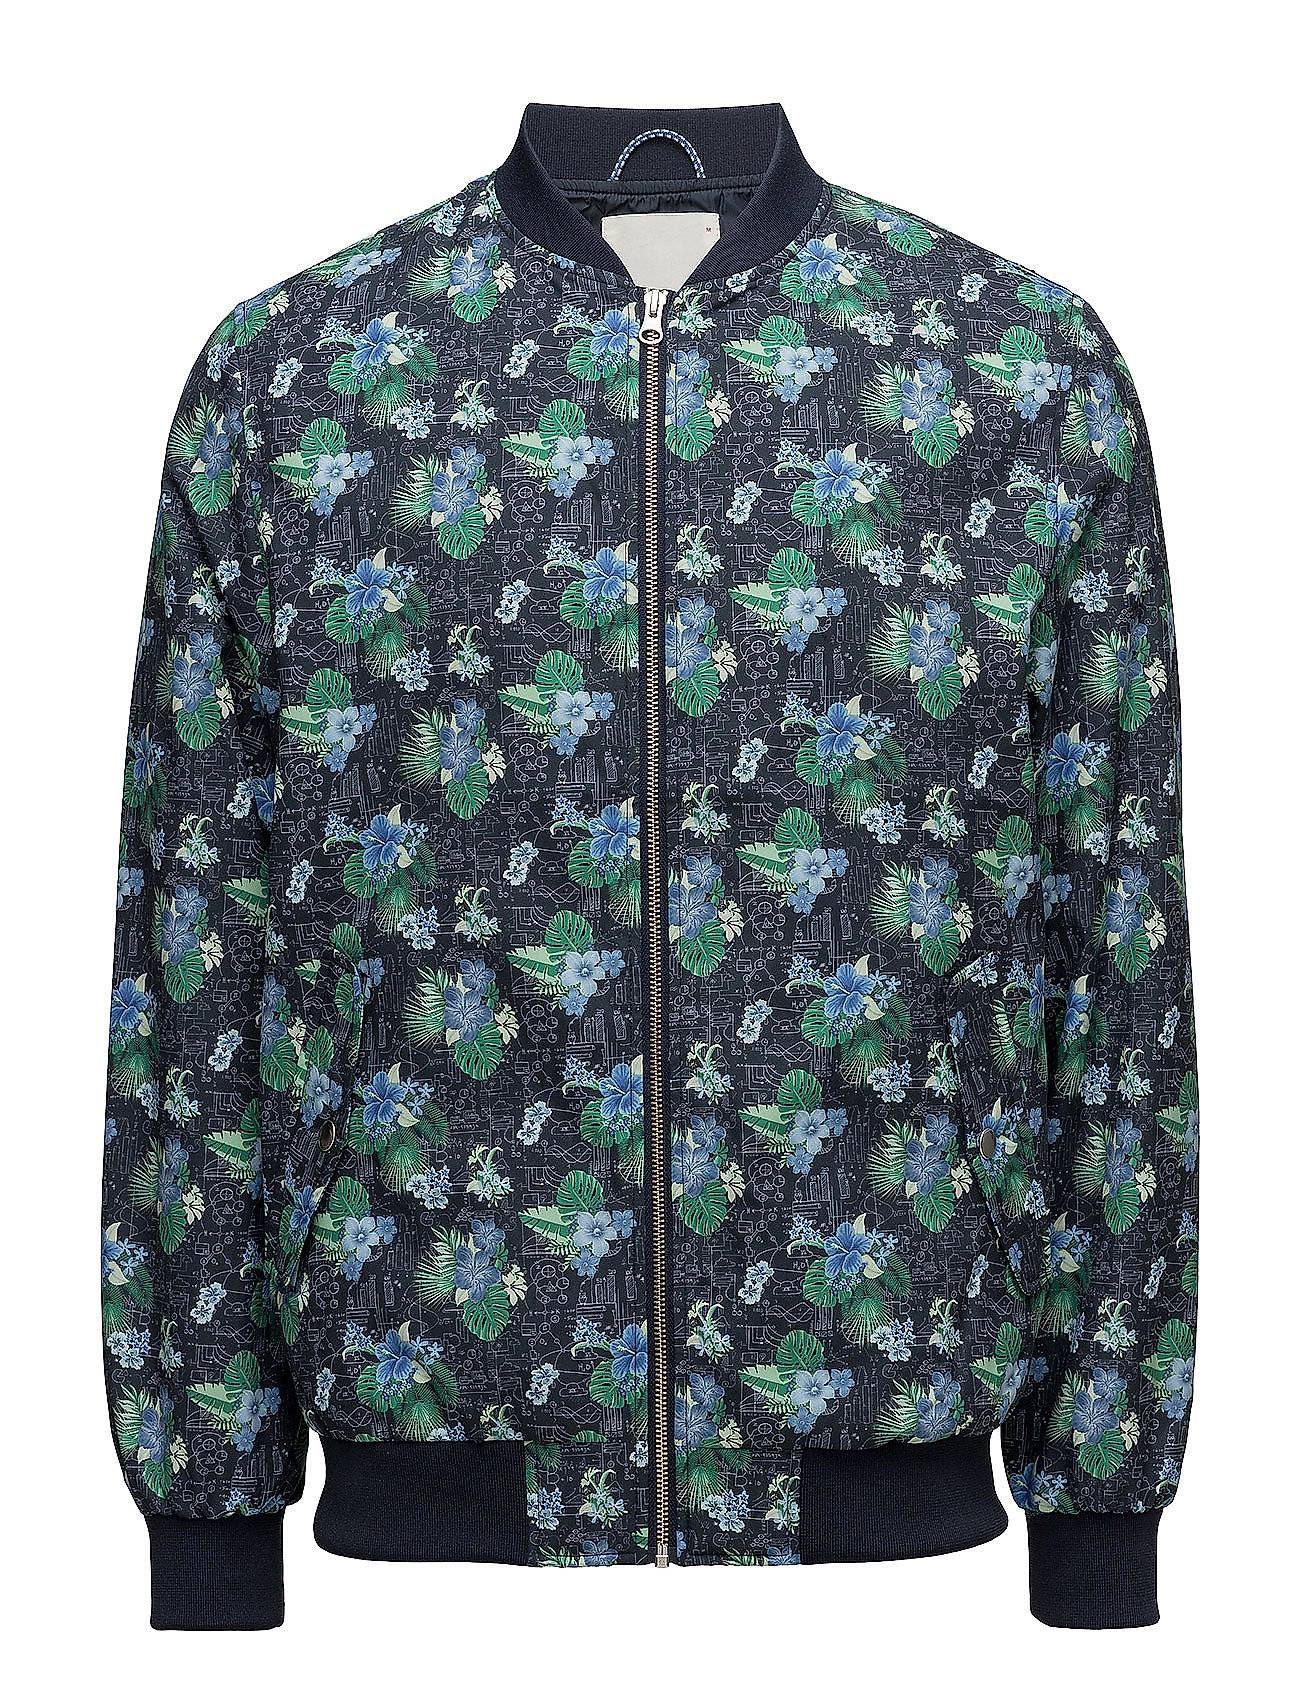 Knowledge Cotton Apparel Pilot Jacket With Print - Grs